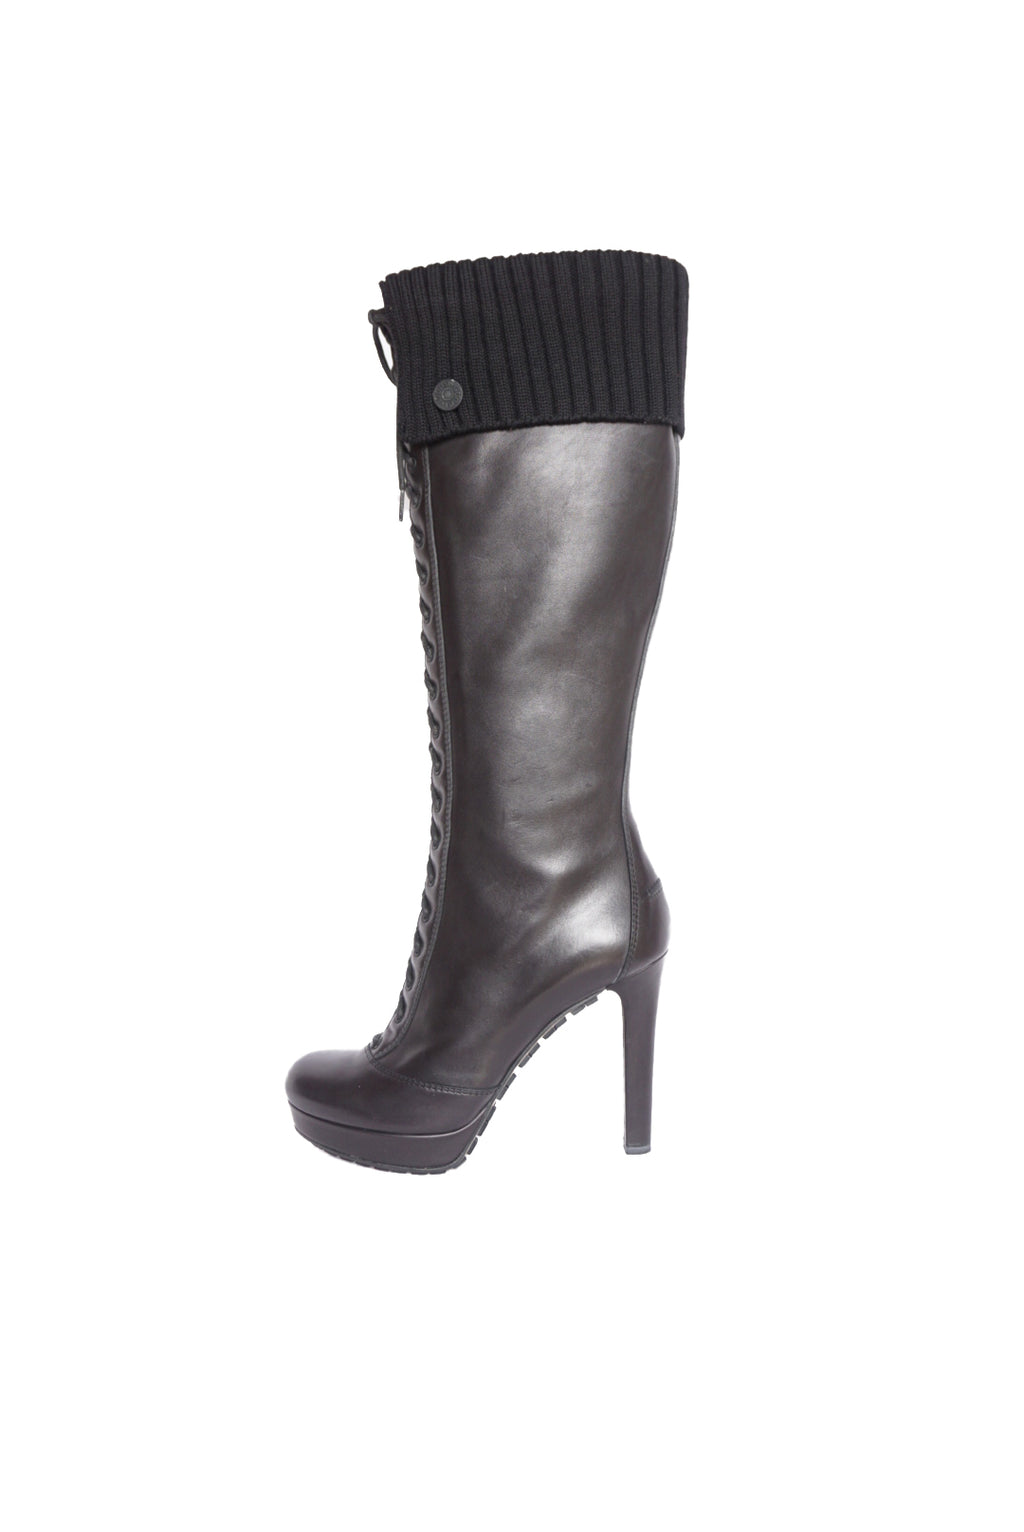 Gucci High Heel Black Boots in Leather and Wool  Size 39 (EU)